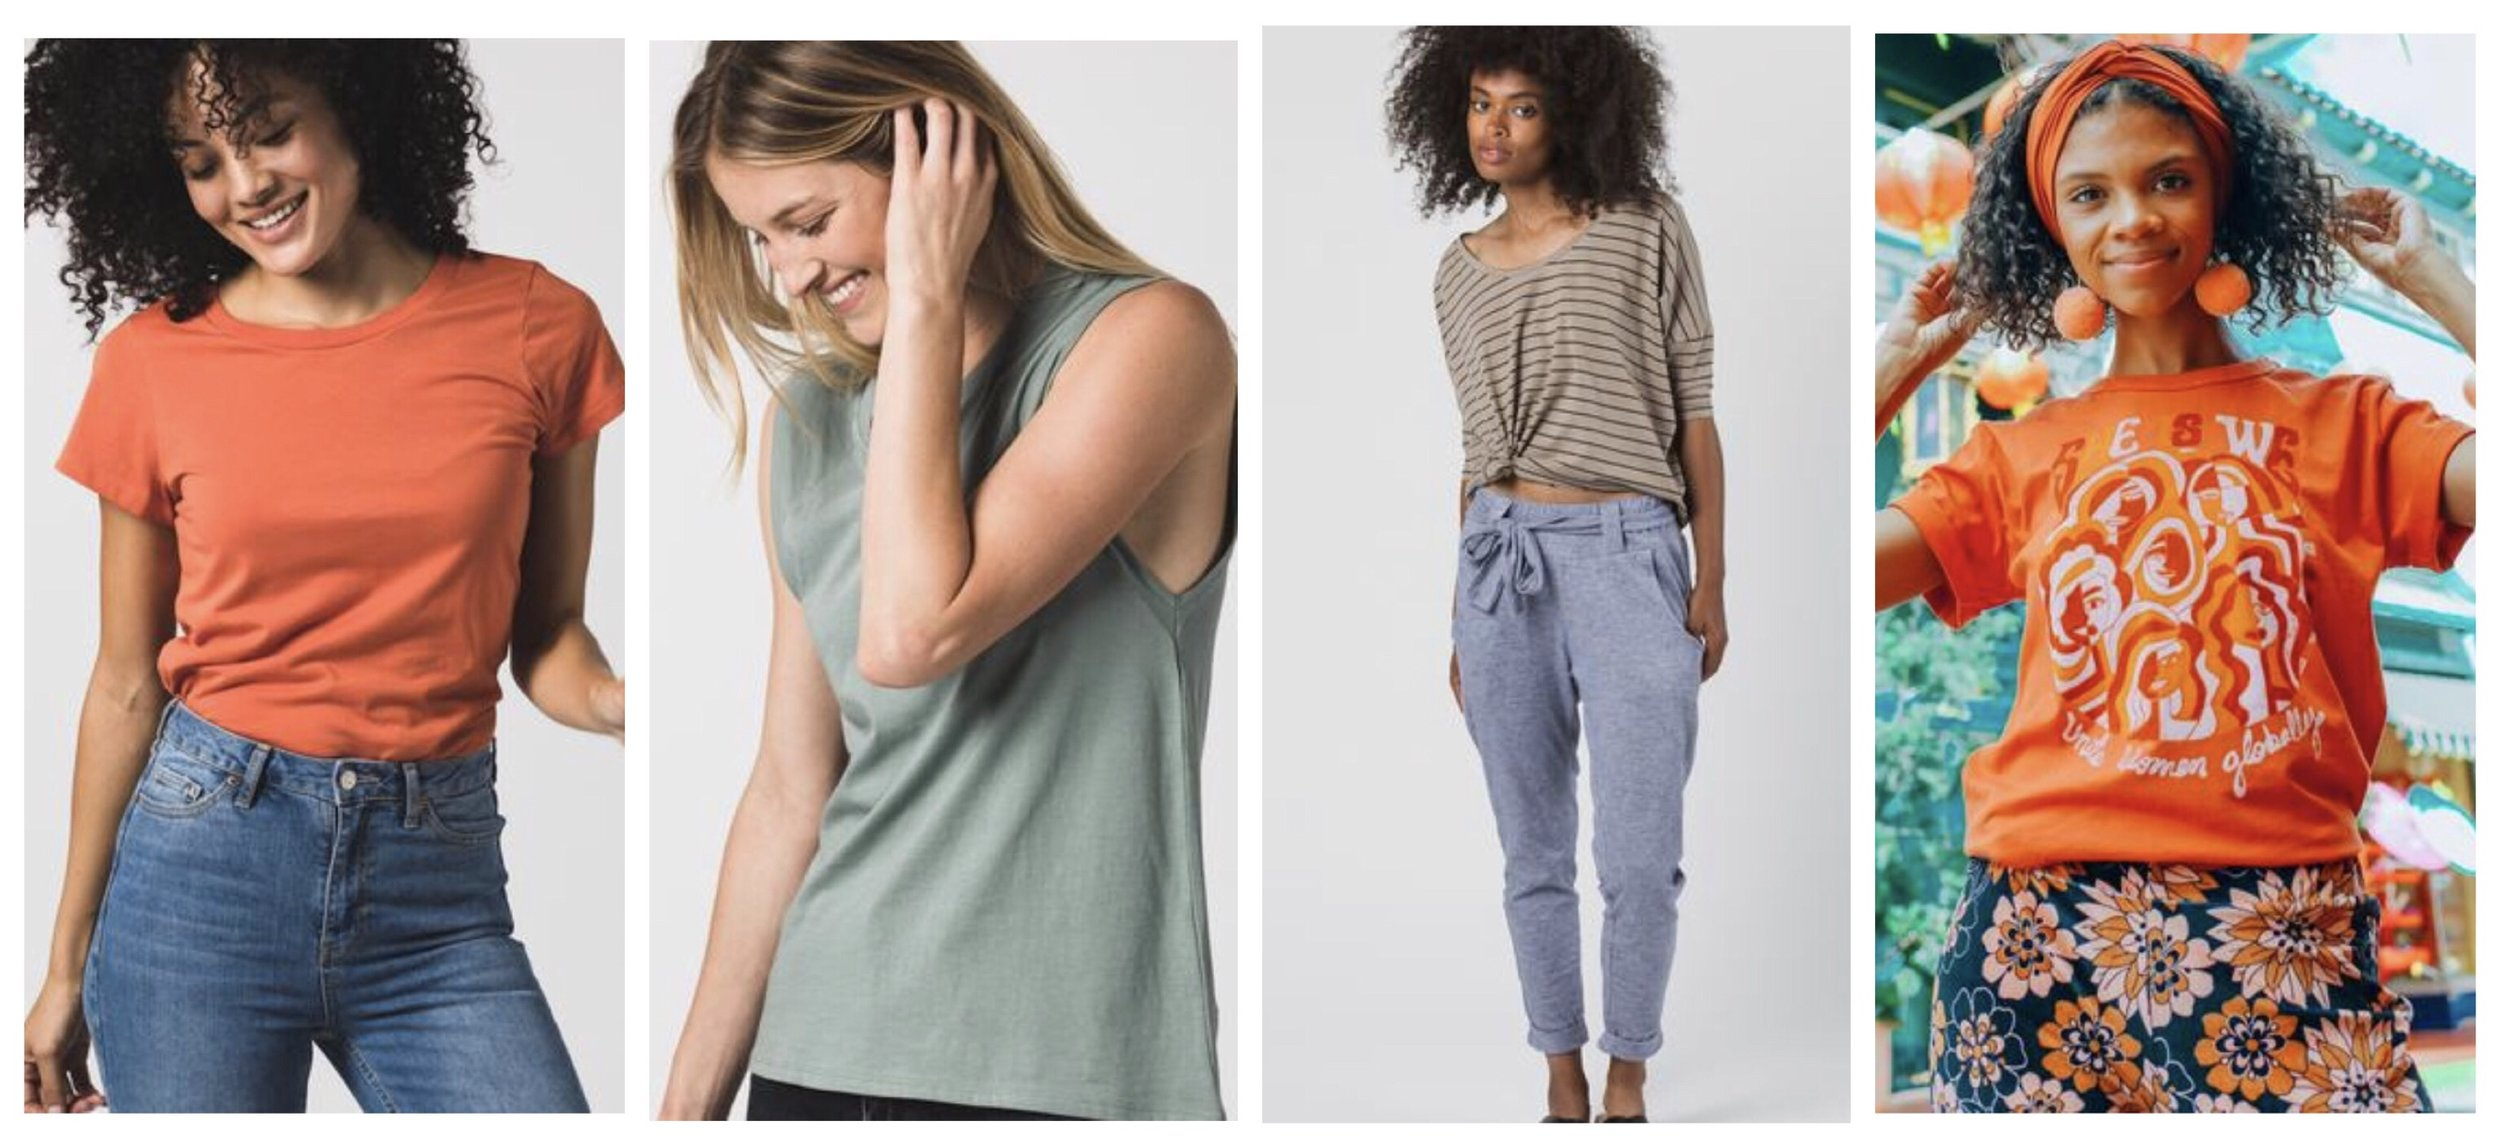 Known Supply Women's Tops and Pants